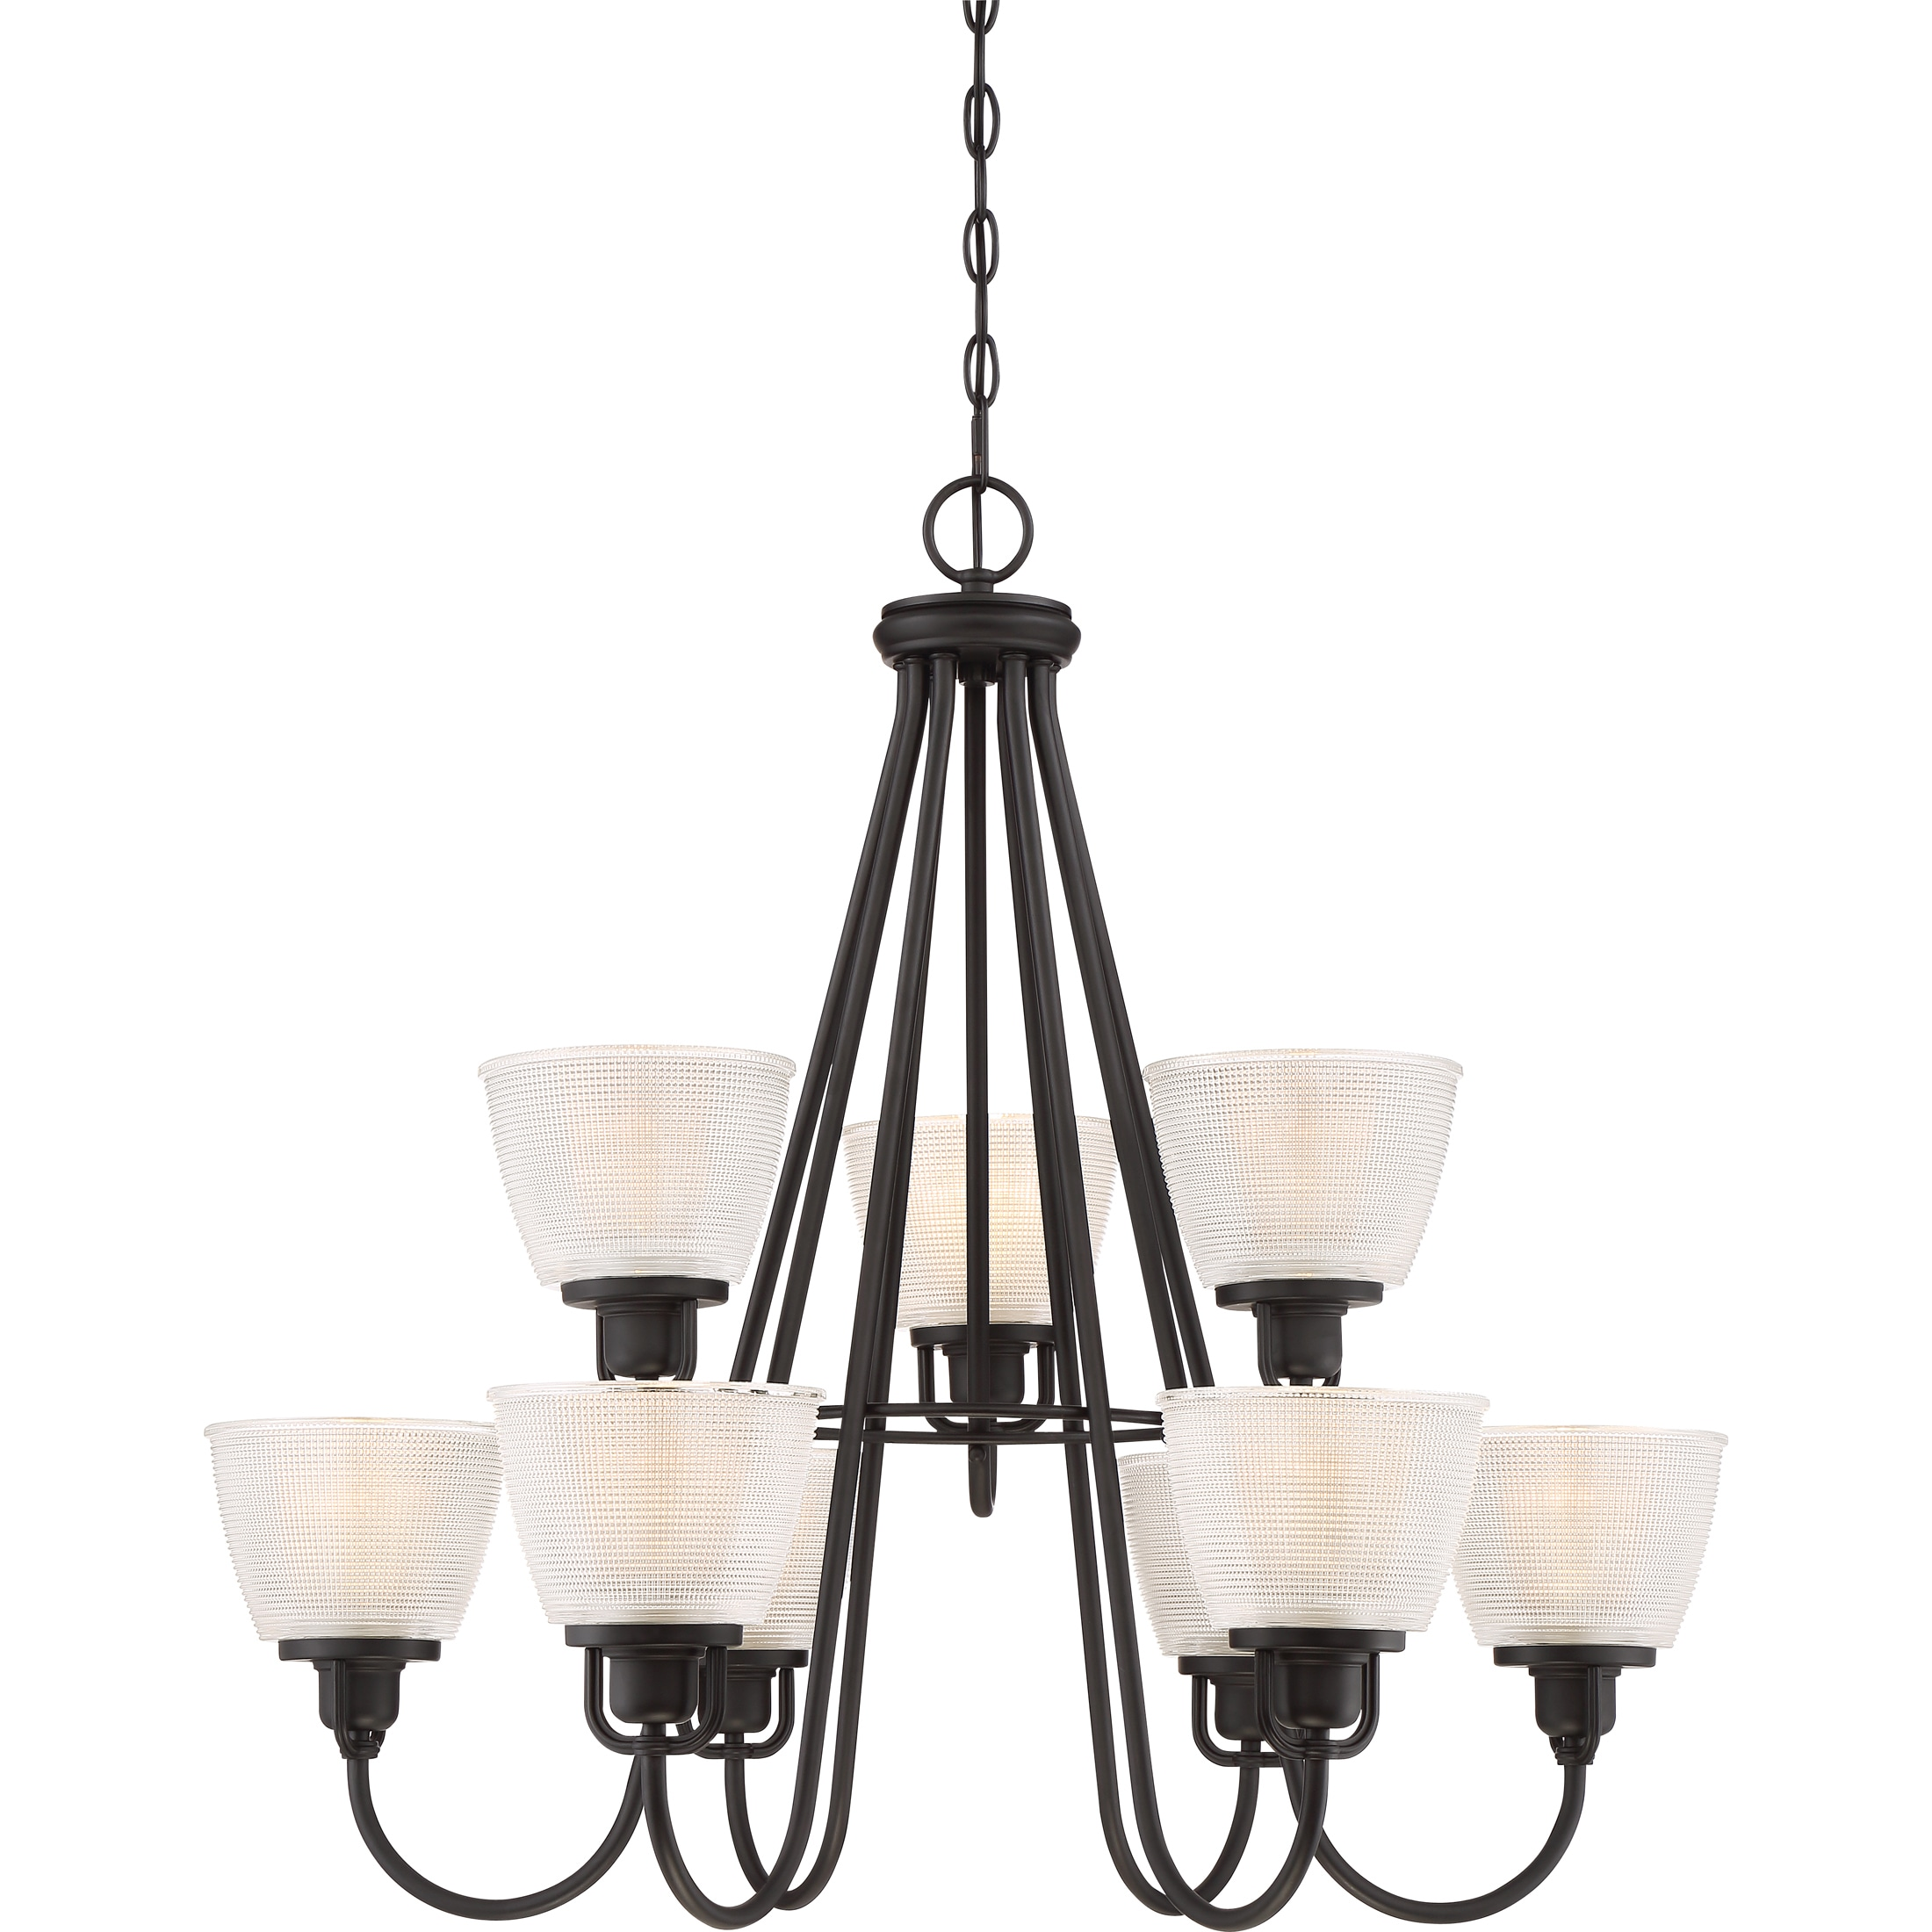 Shop quoize dublin mystic black finish glass 9 light two tier chandelier free shipping today overstock 13914743